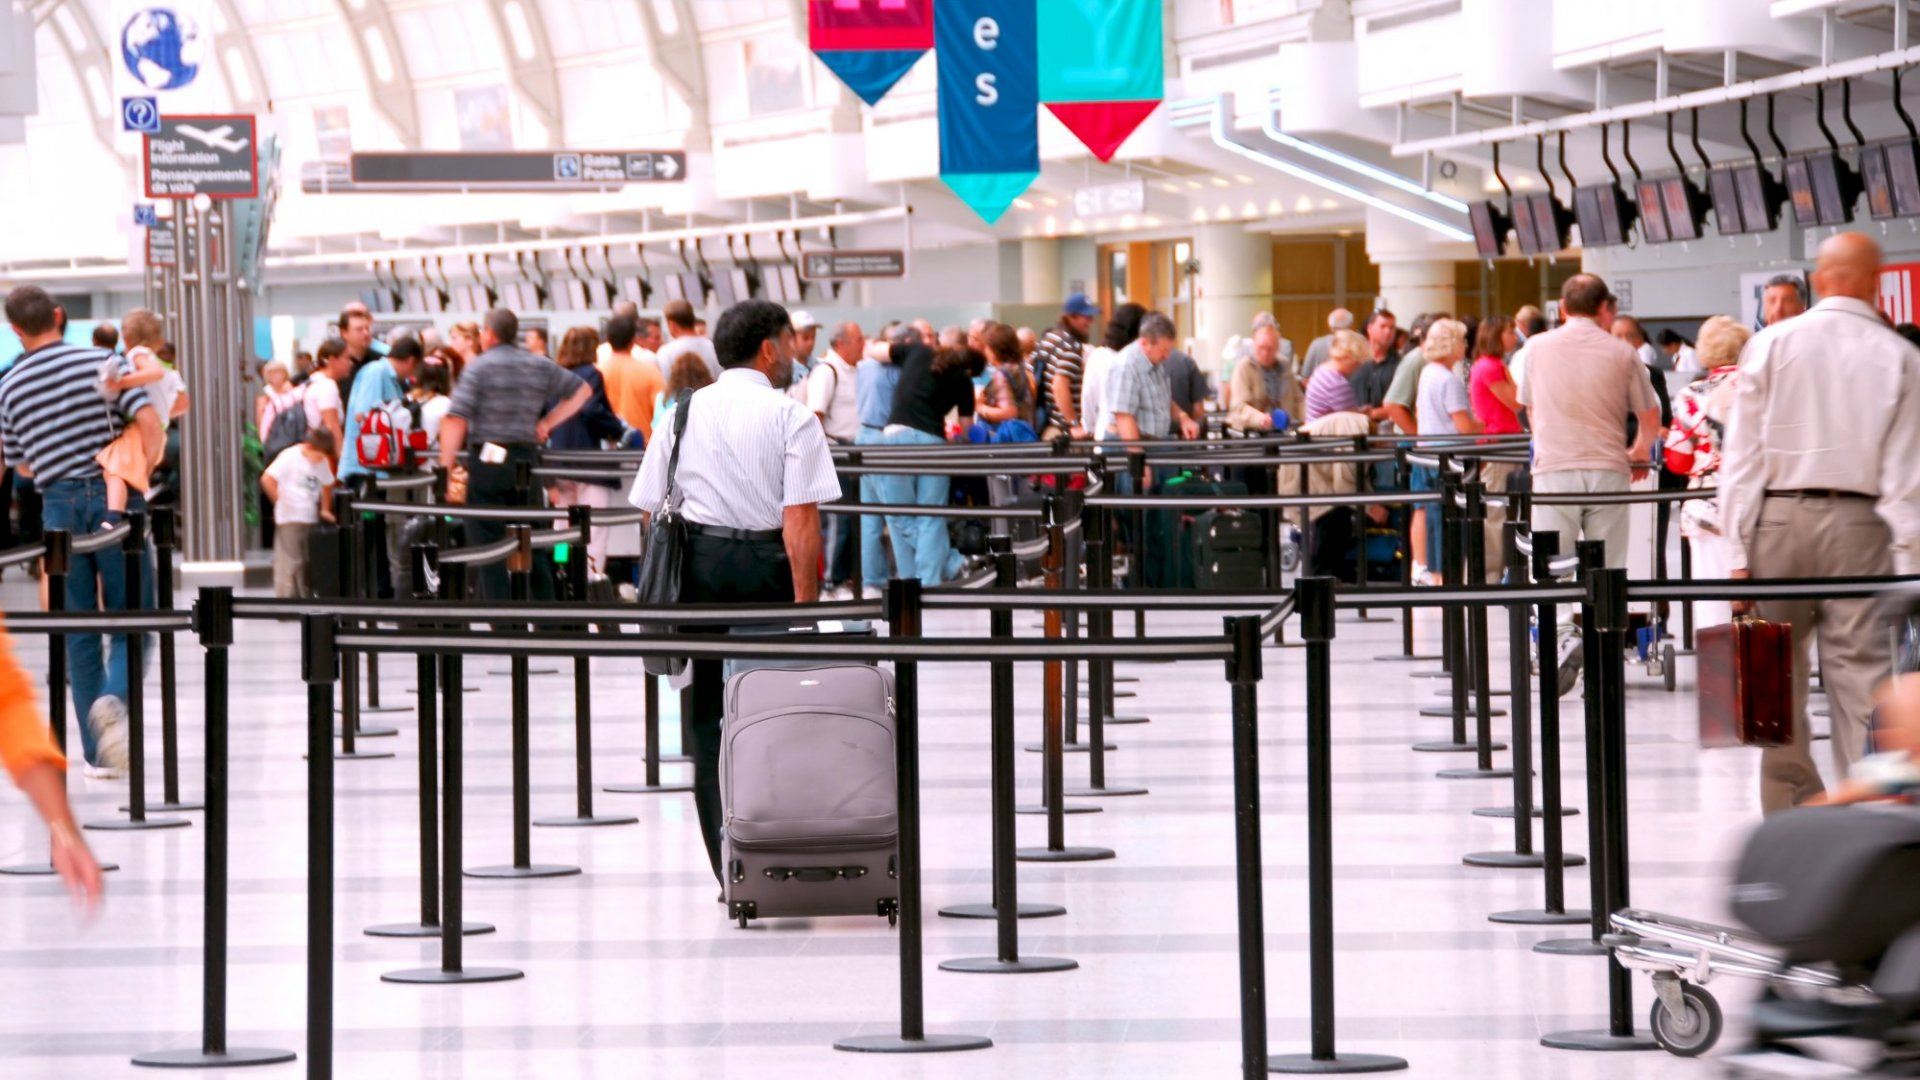 Airports can be frustrating, but business travel is a great opportunity